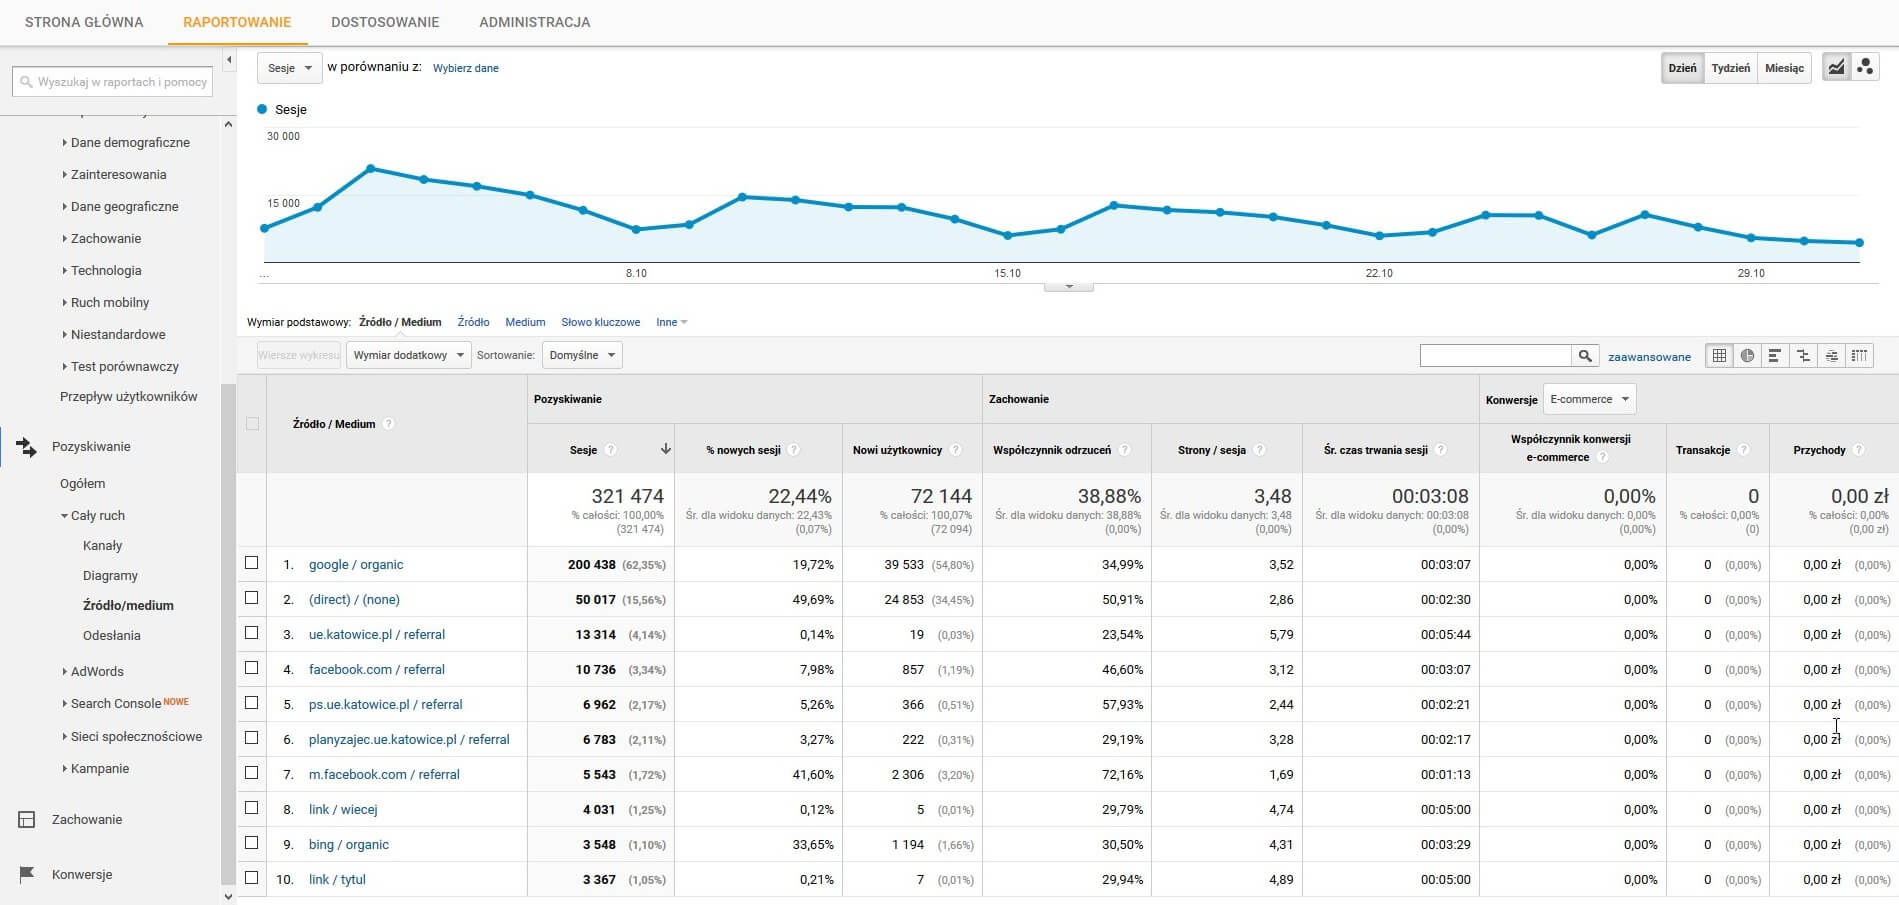 Źródło/medium Google Analytics